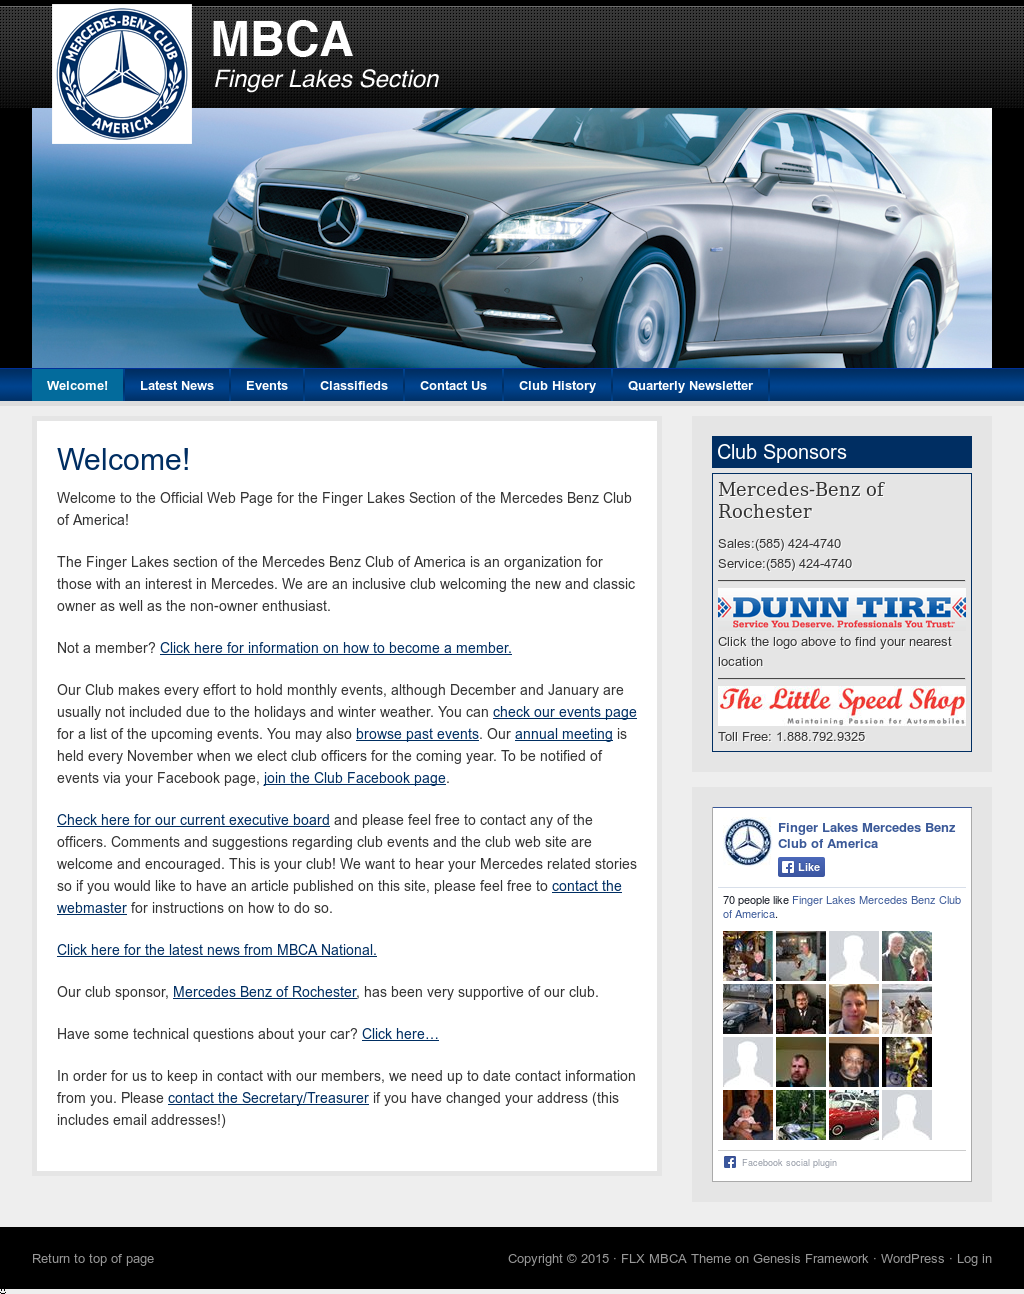 Finger Lakes Mercedes Benz Club Of America Competitors, Revenue And  Employees   Owler Company Profile